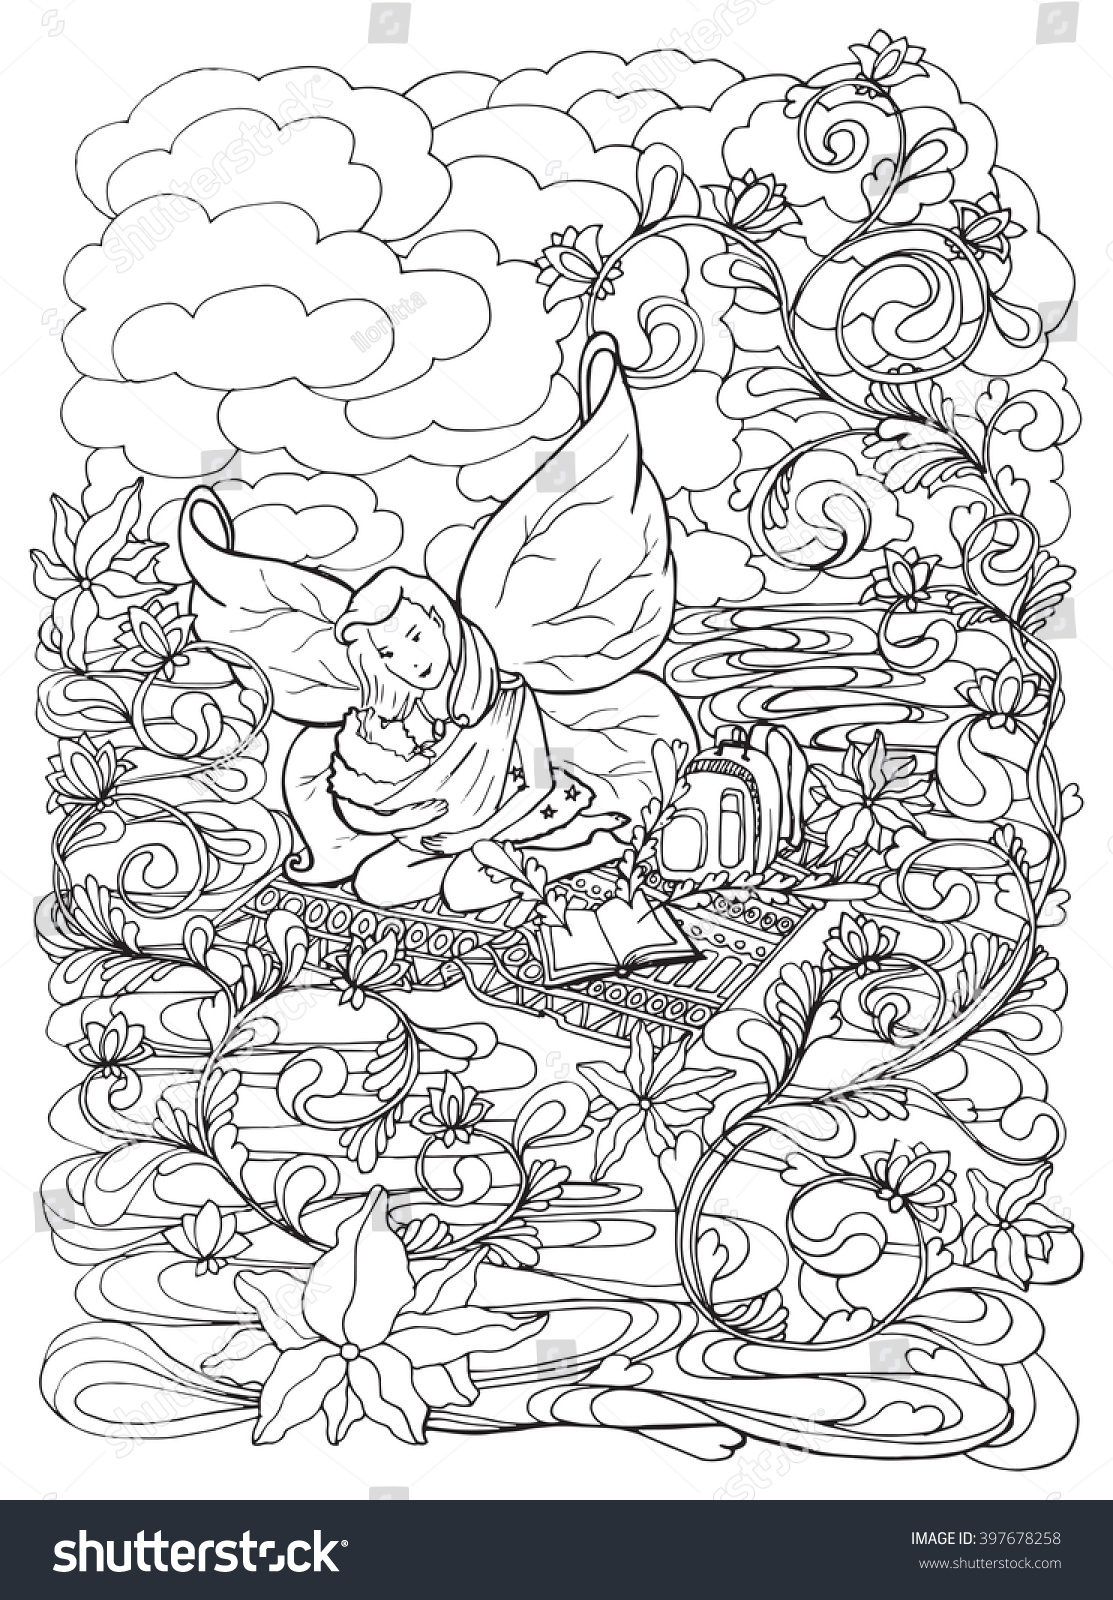 Adult Coloring Book Page Mother Breast Stock Vector 397678258 ...